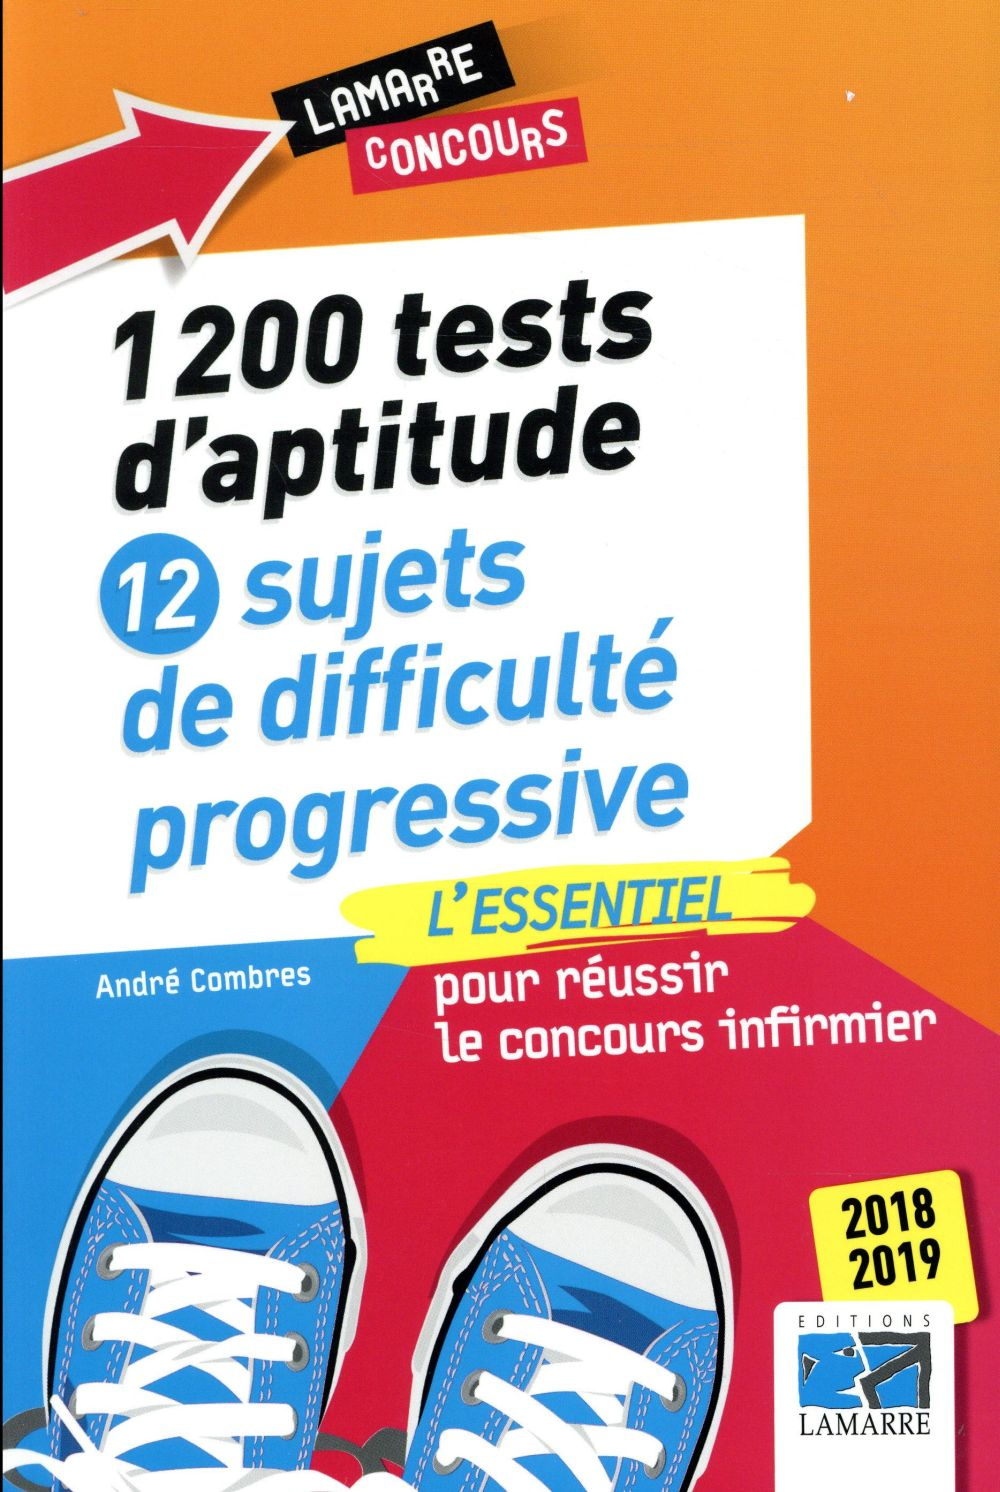 1200 TESTS D APTITUDE 12 SUJETS DE DIFFICULTE PROGRESSIVE